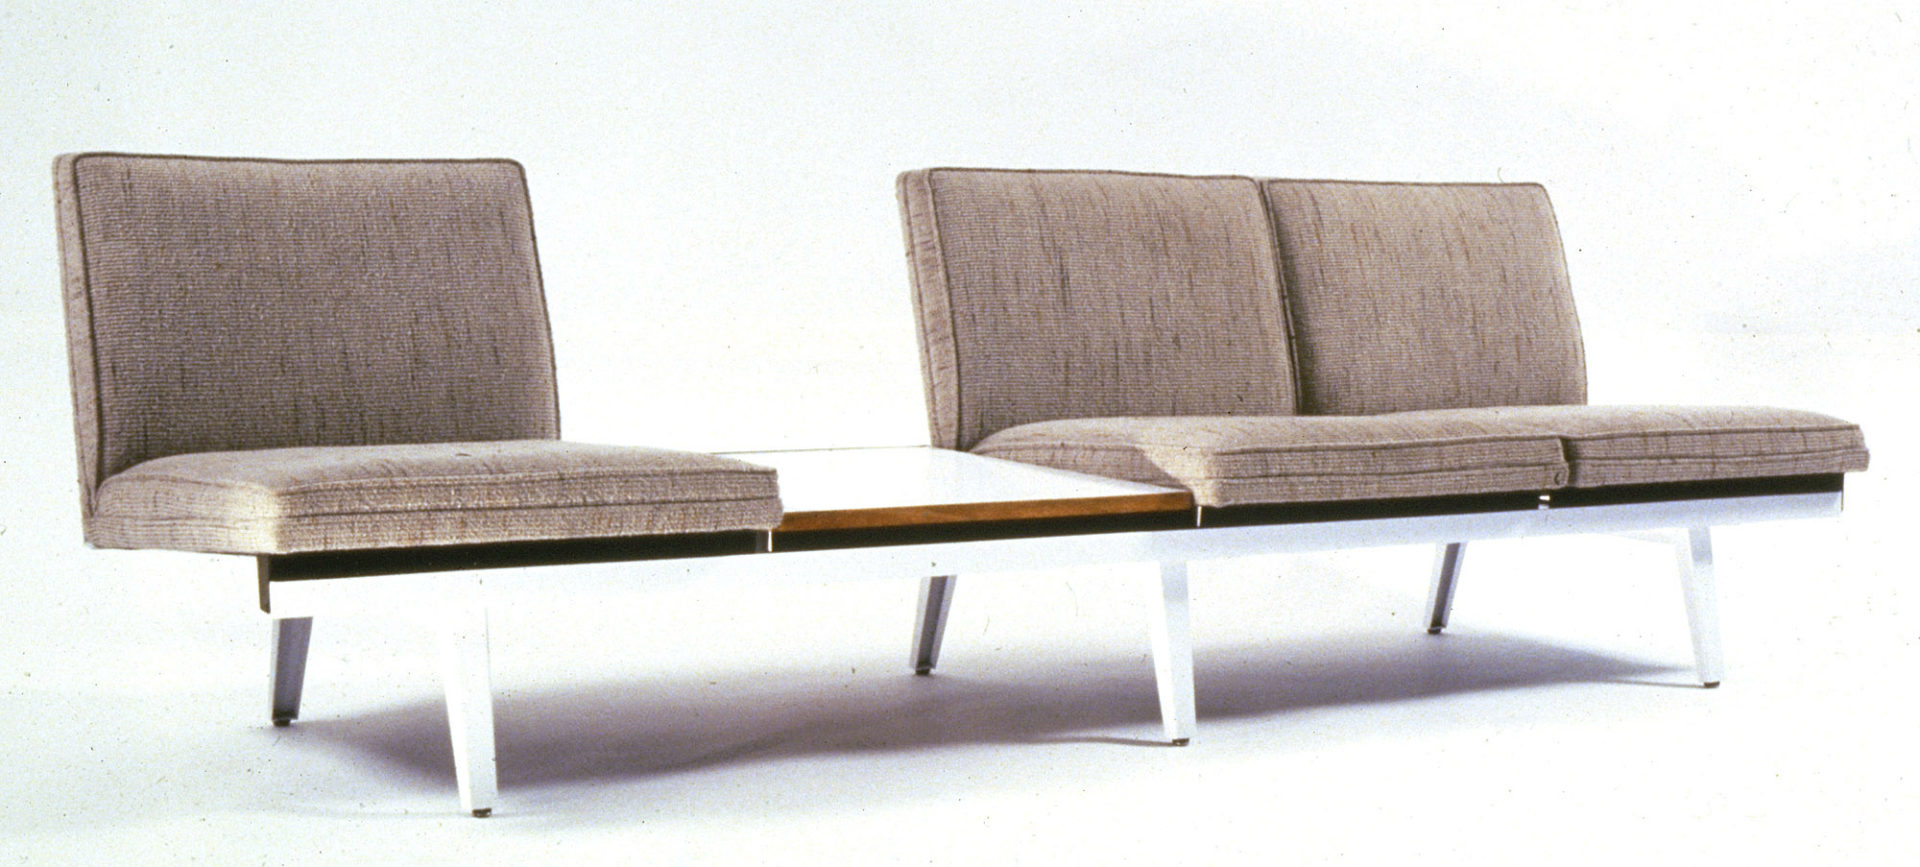 Armless sofa with three seats with tan seat and back cushions on a low steel bench. Between two of the seats is a white Formica table surface.